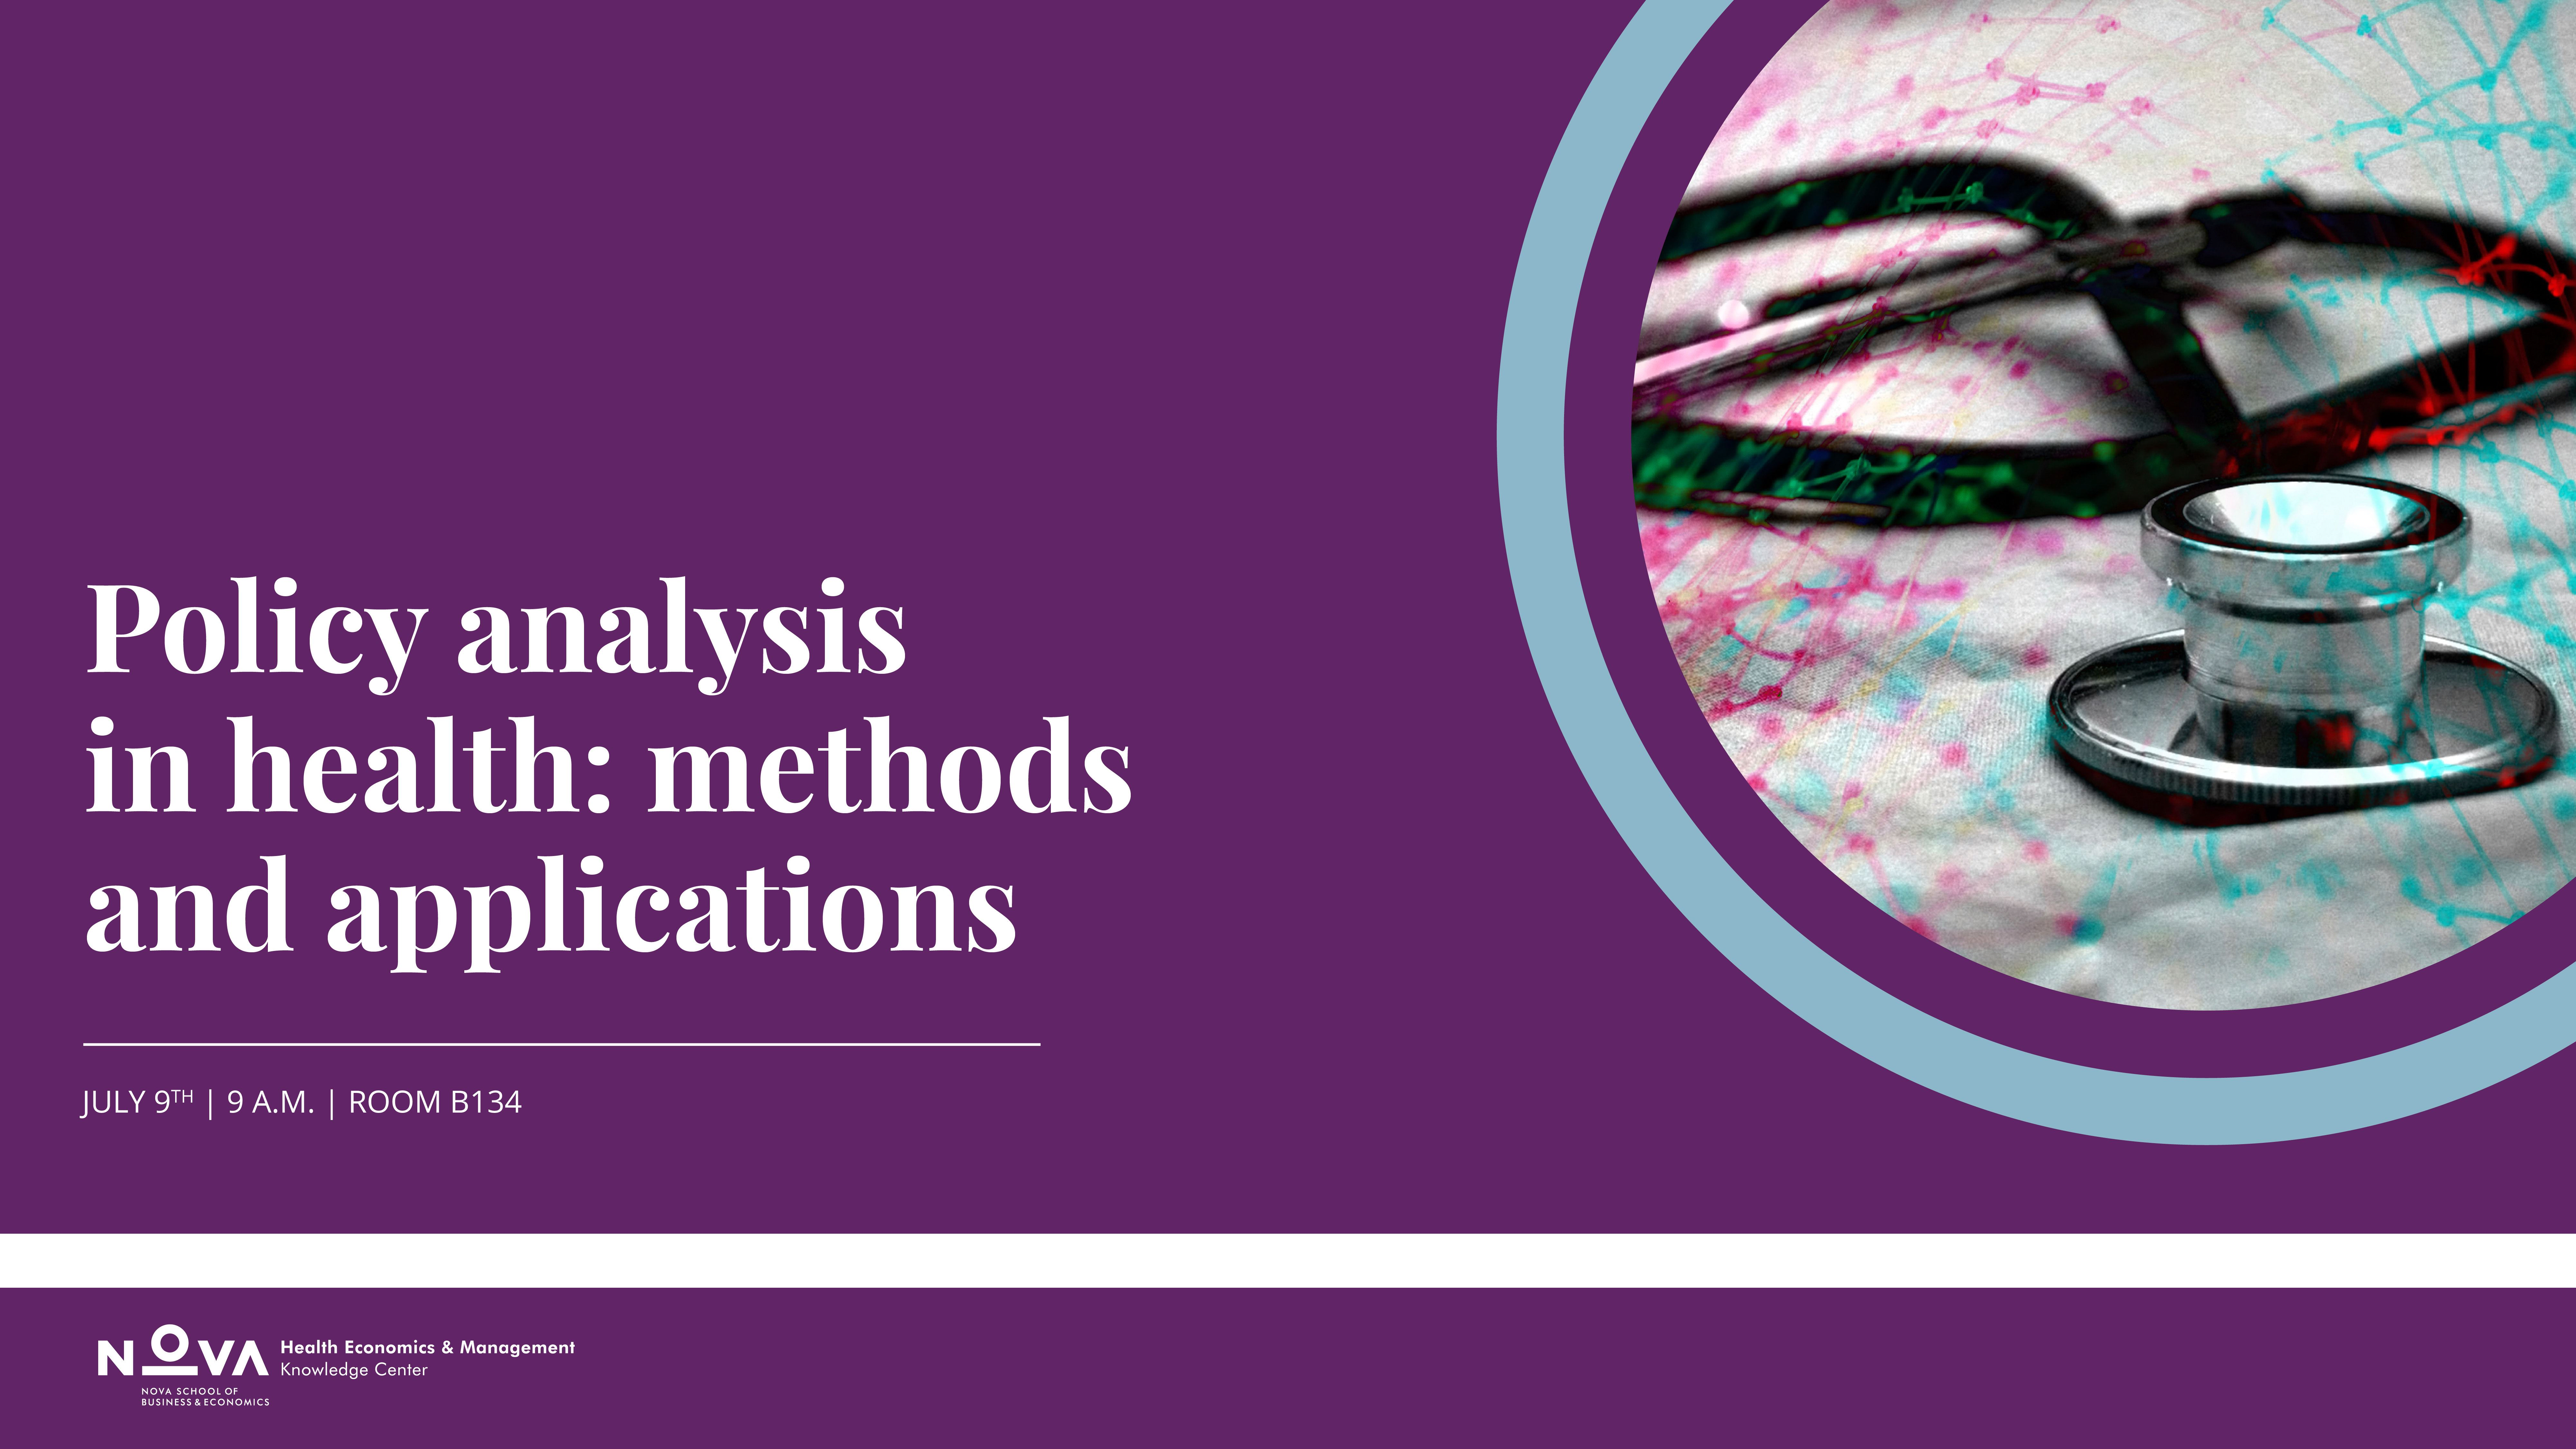 Seminar on Policy Analysis in Health: Methods and Applications